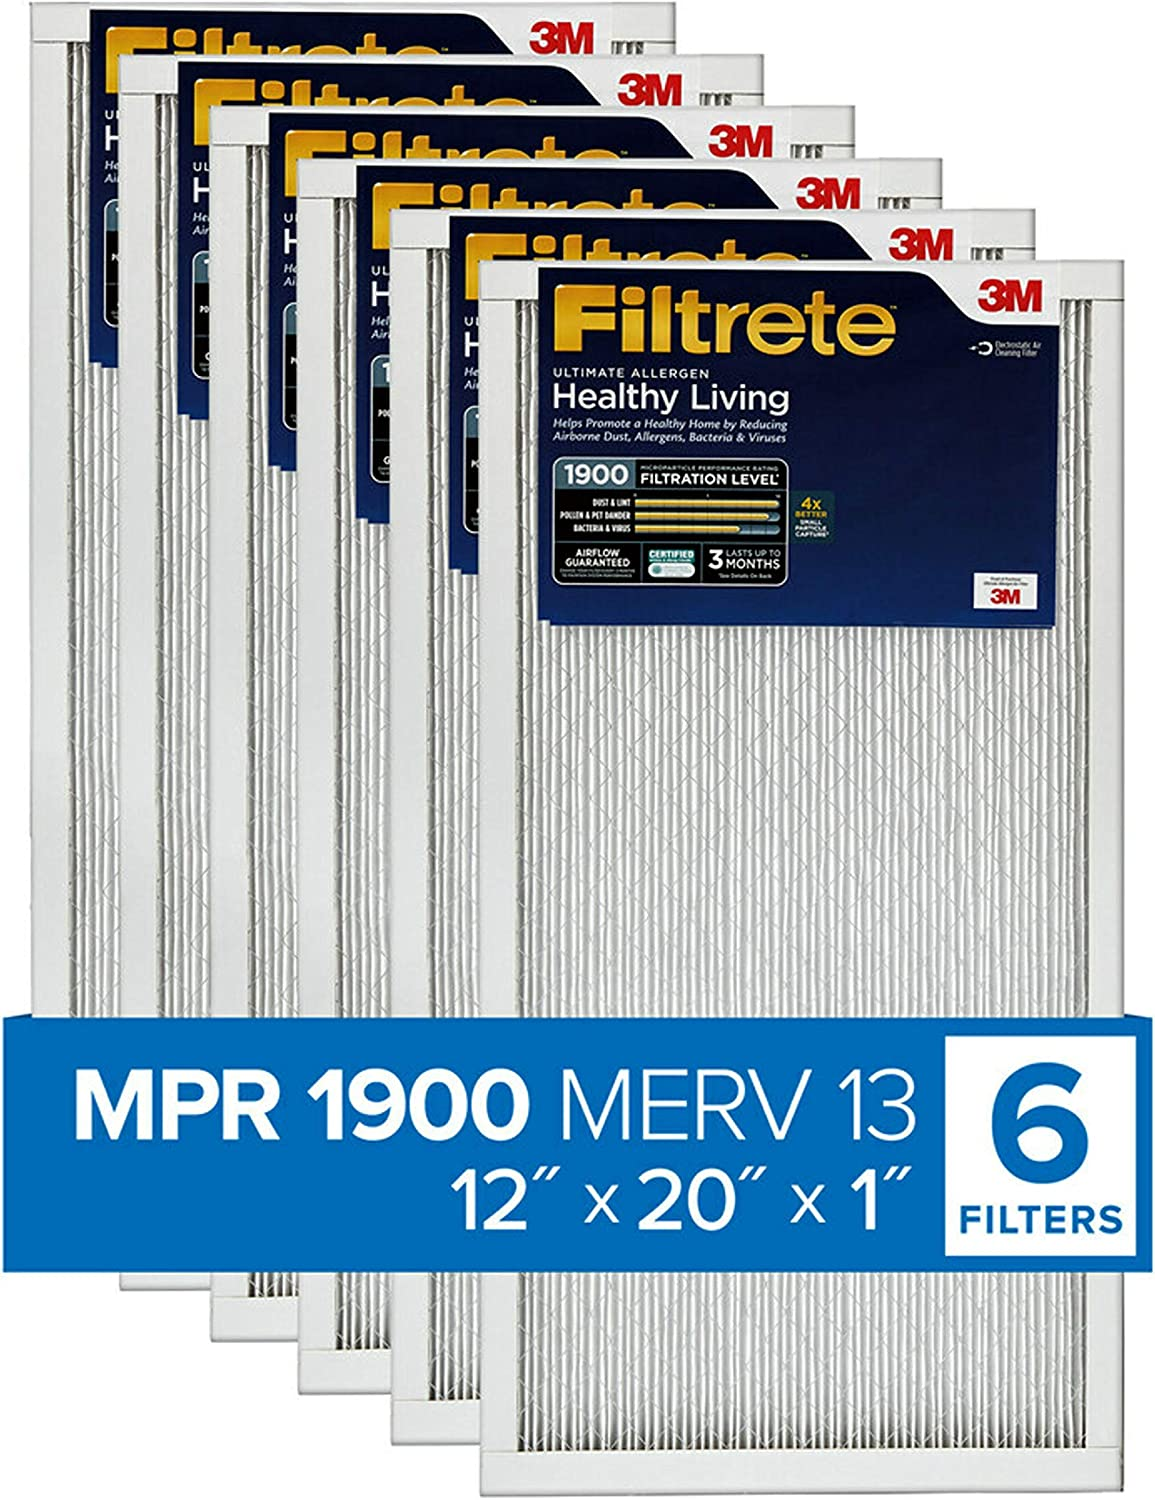 Filtrete 12x20x1, AC Furnace Air Filter, MPR 1900, Healthy Living Ultimate Allergen, 6-Pack (exact dimensions 11.81 x 19.81 x 0.78)